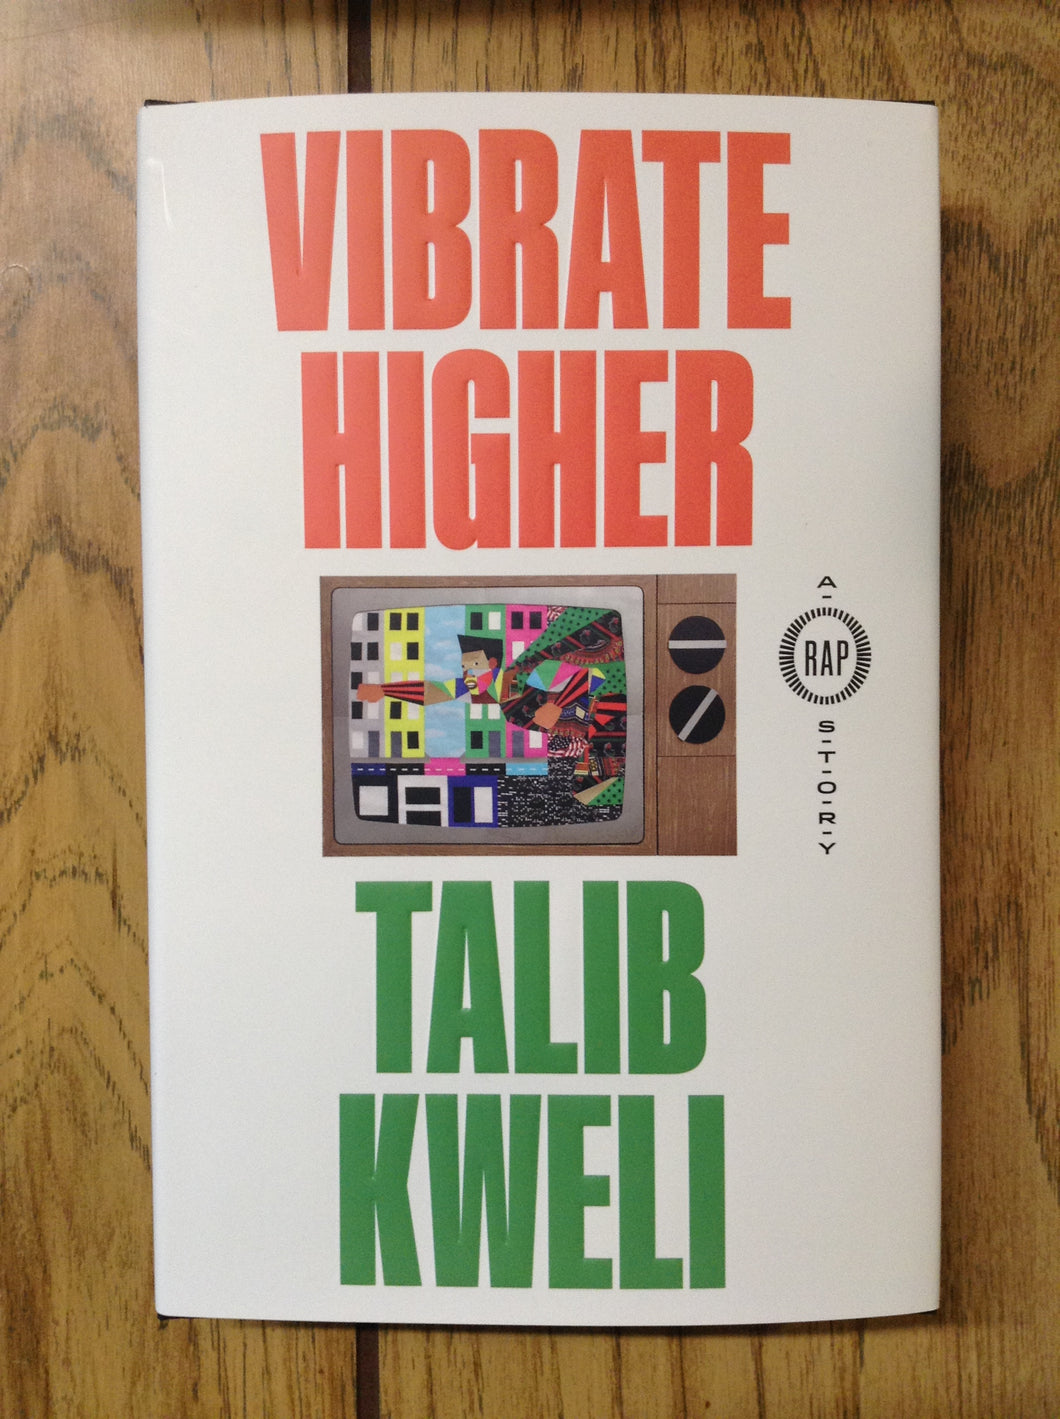 Vibrate Higher: A Rap Story